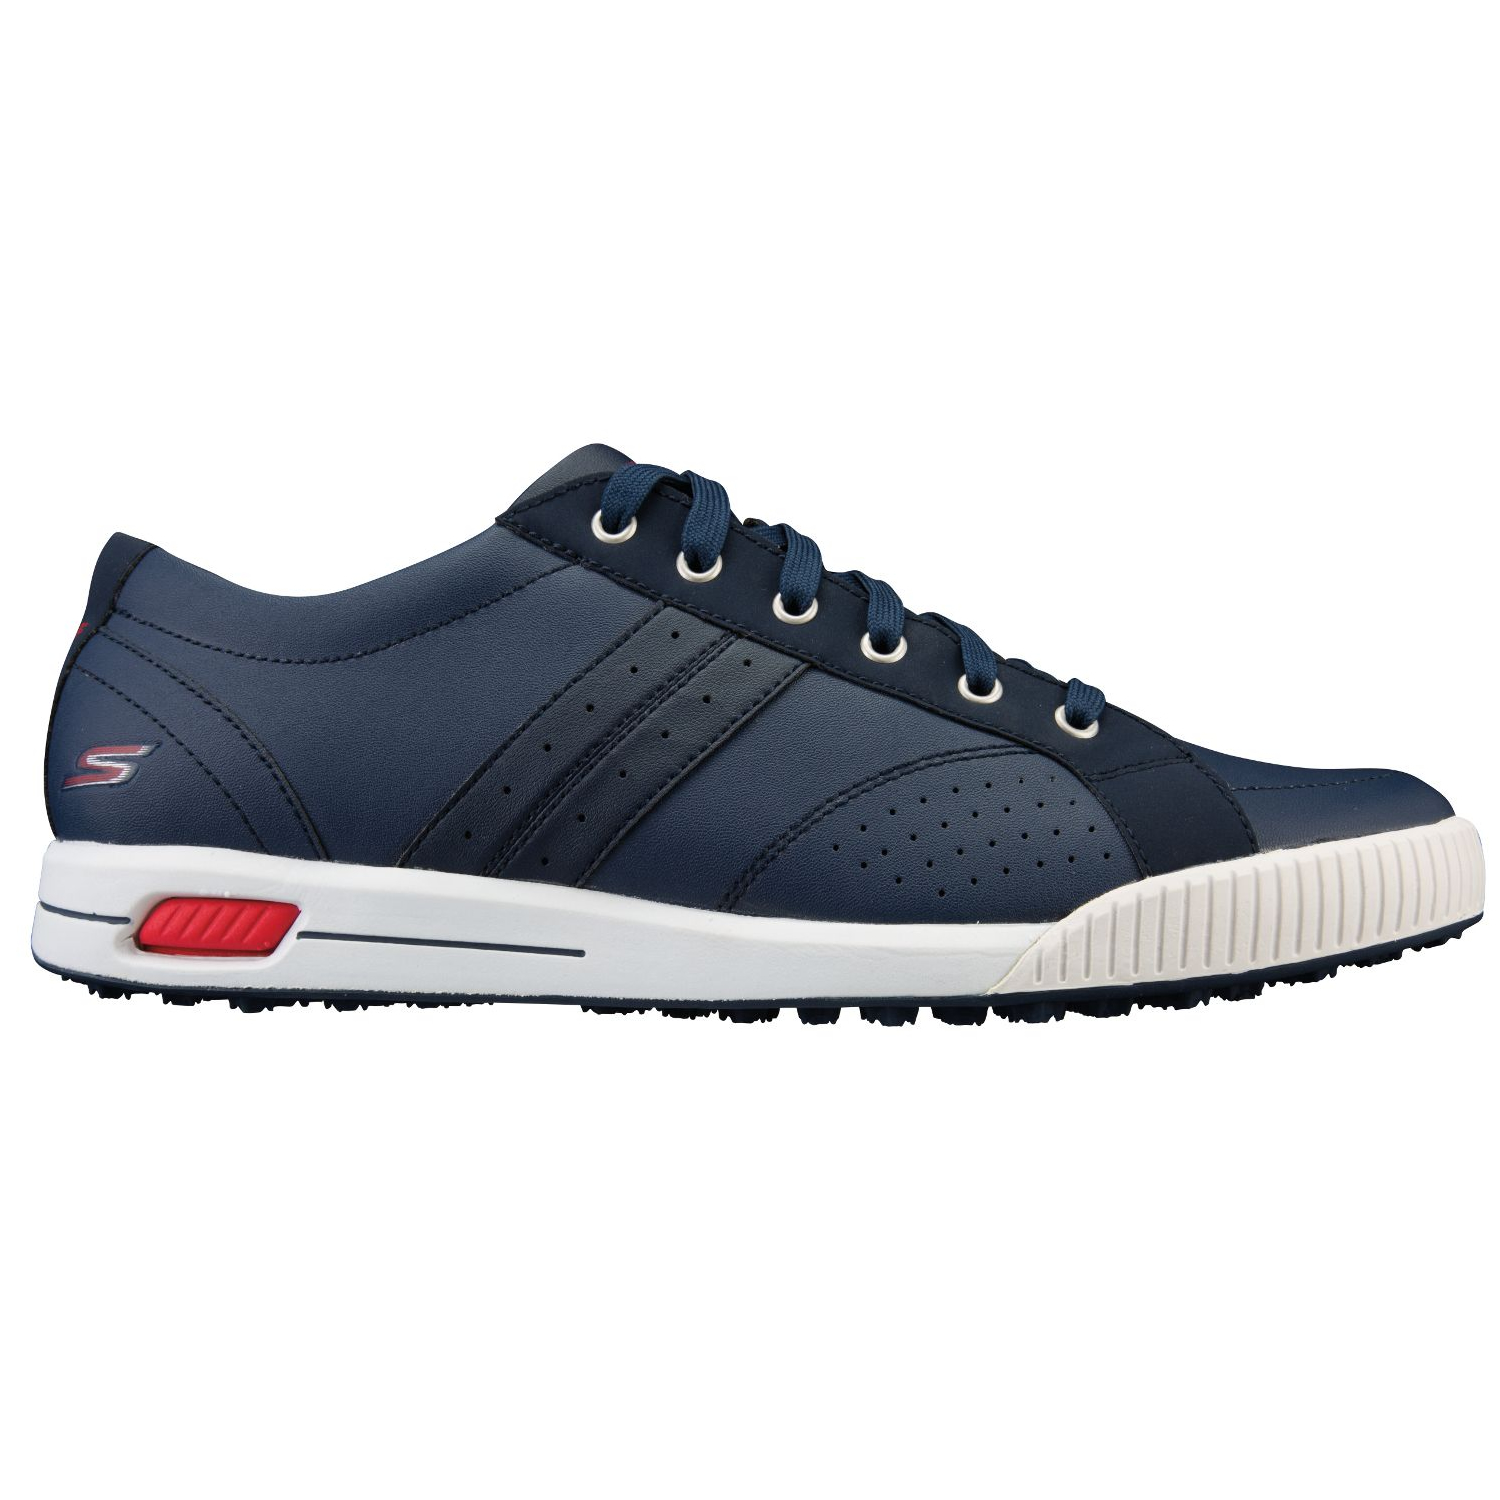 Skechers Go Golf Drive Golf Shoes Navy Red Scottsdale Golf